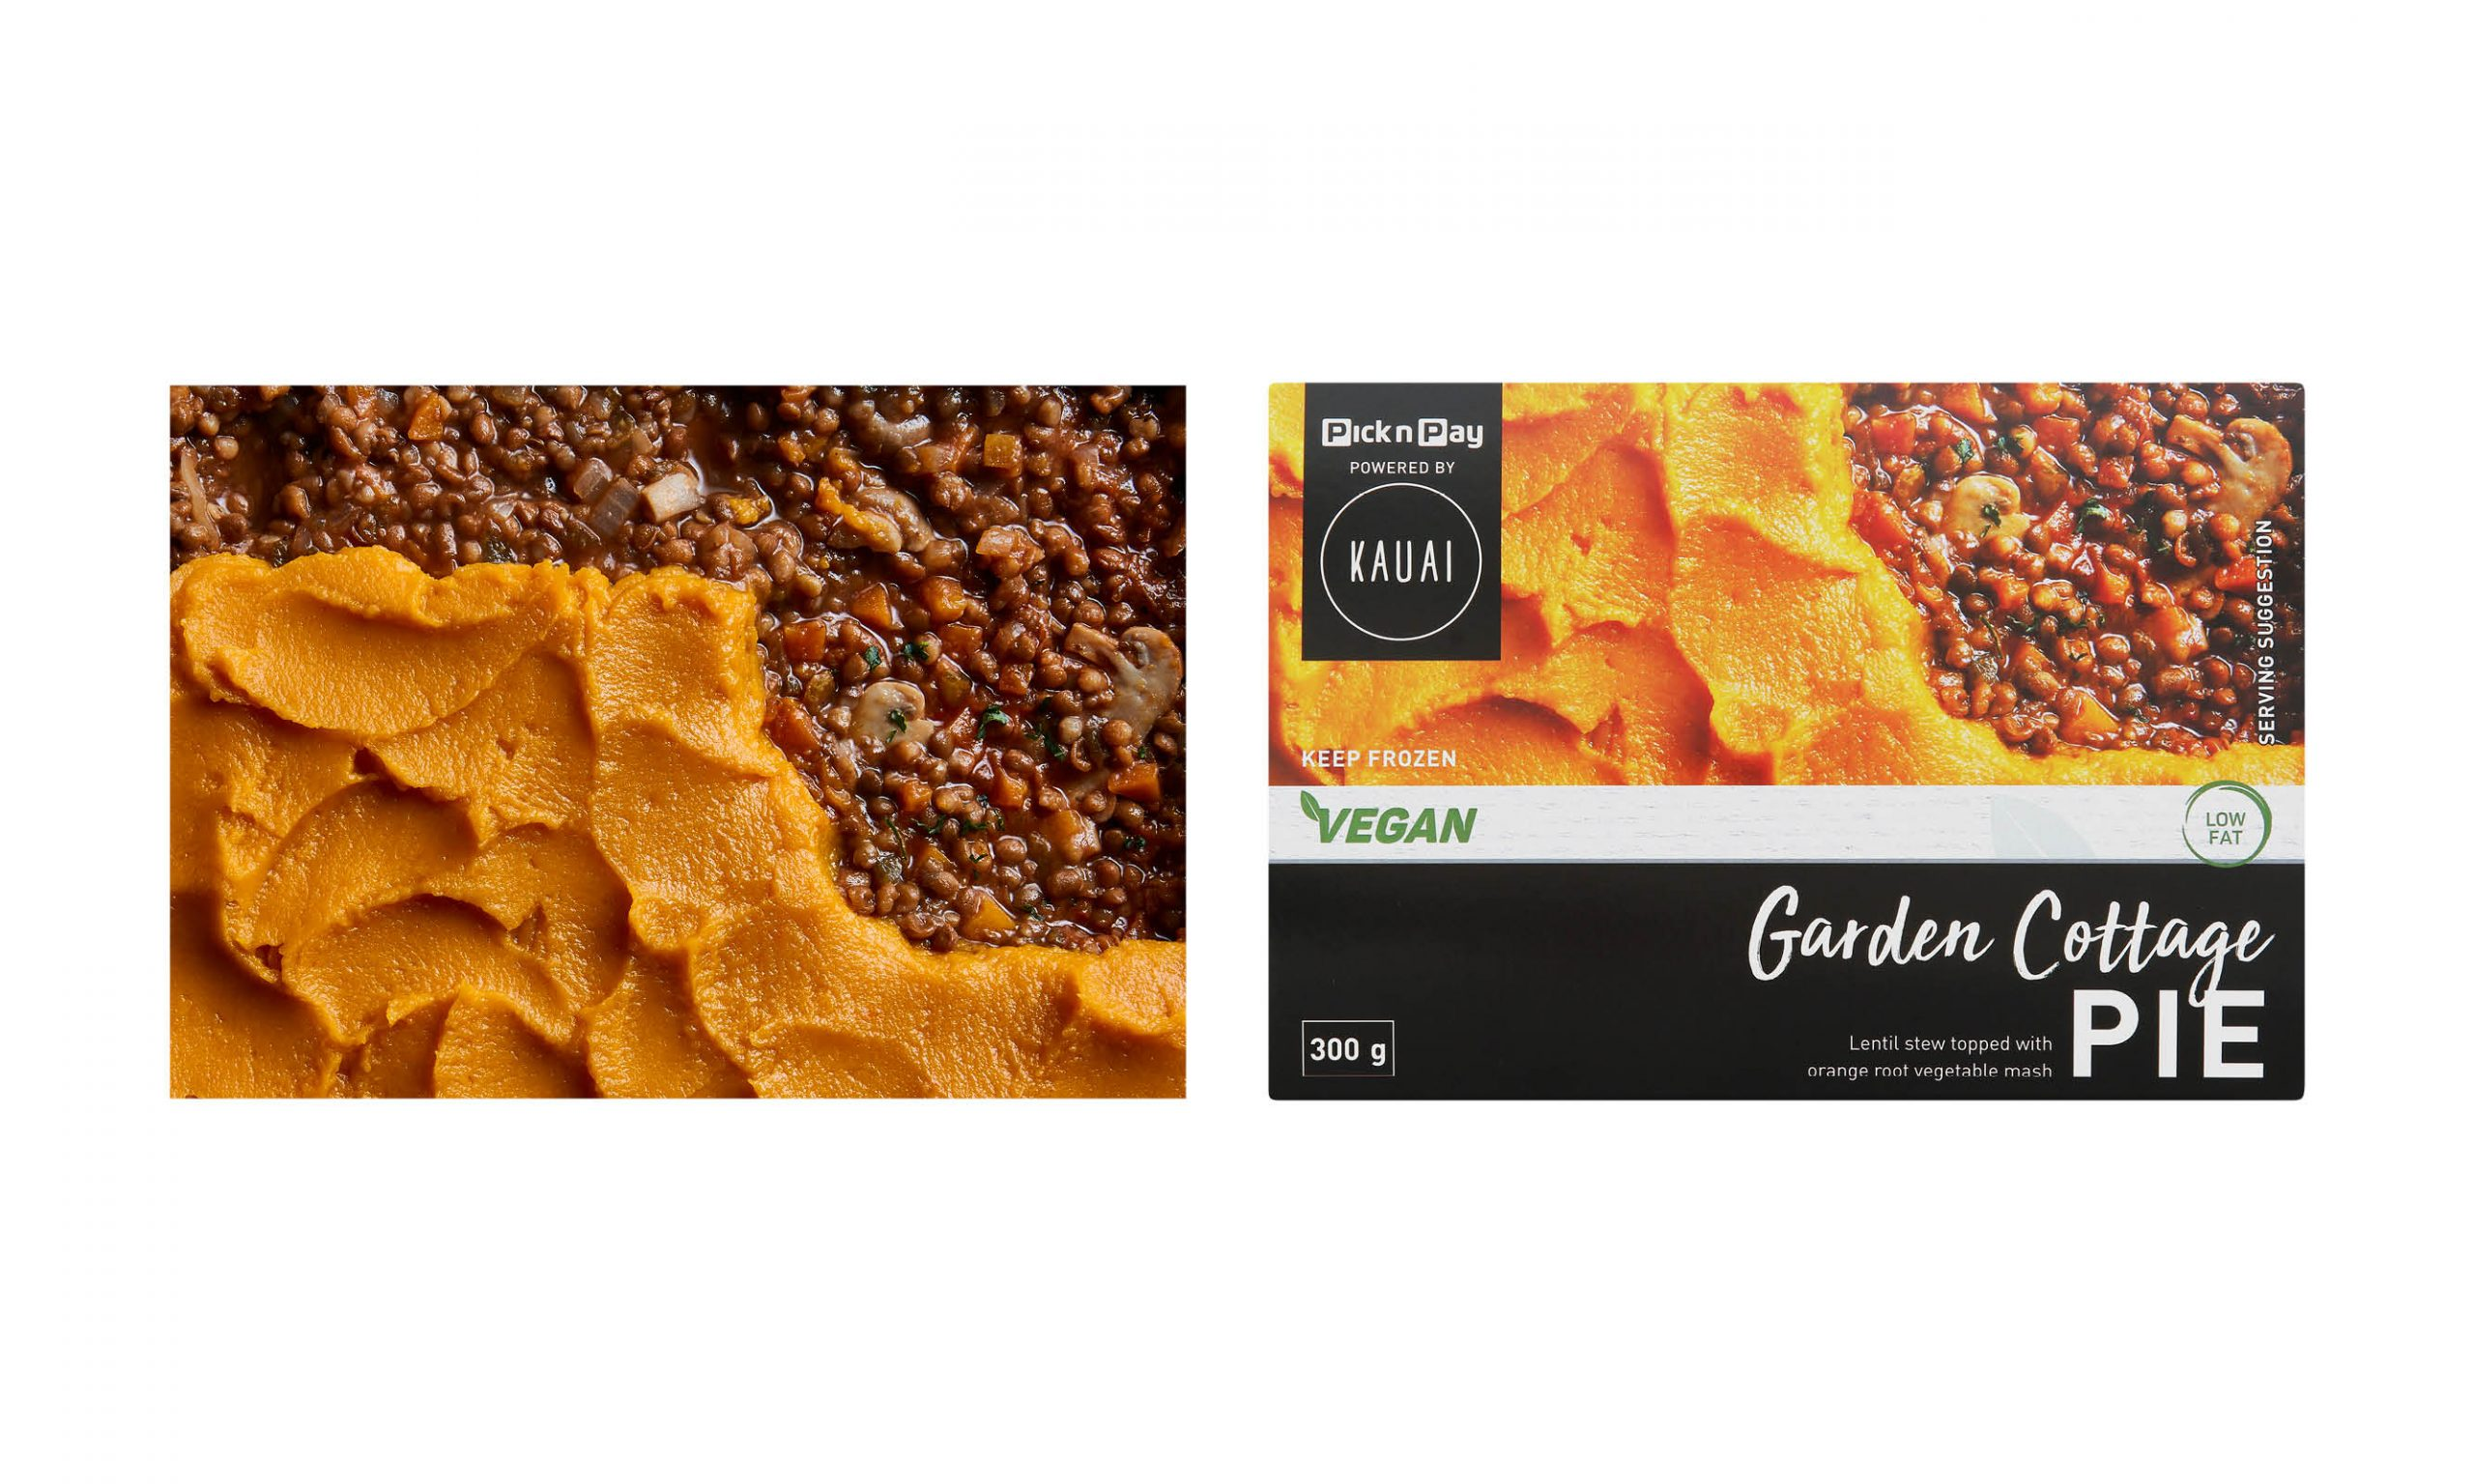 PnP powered by Kauai Frozen Meal Range - Garden Cottage Pie